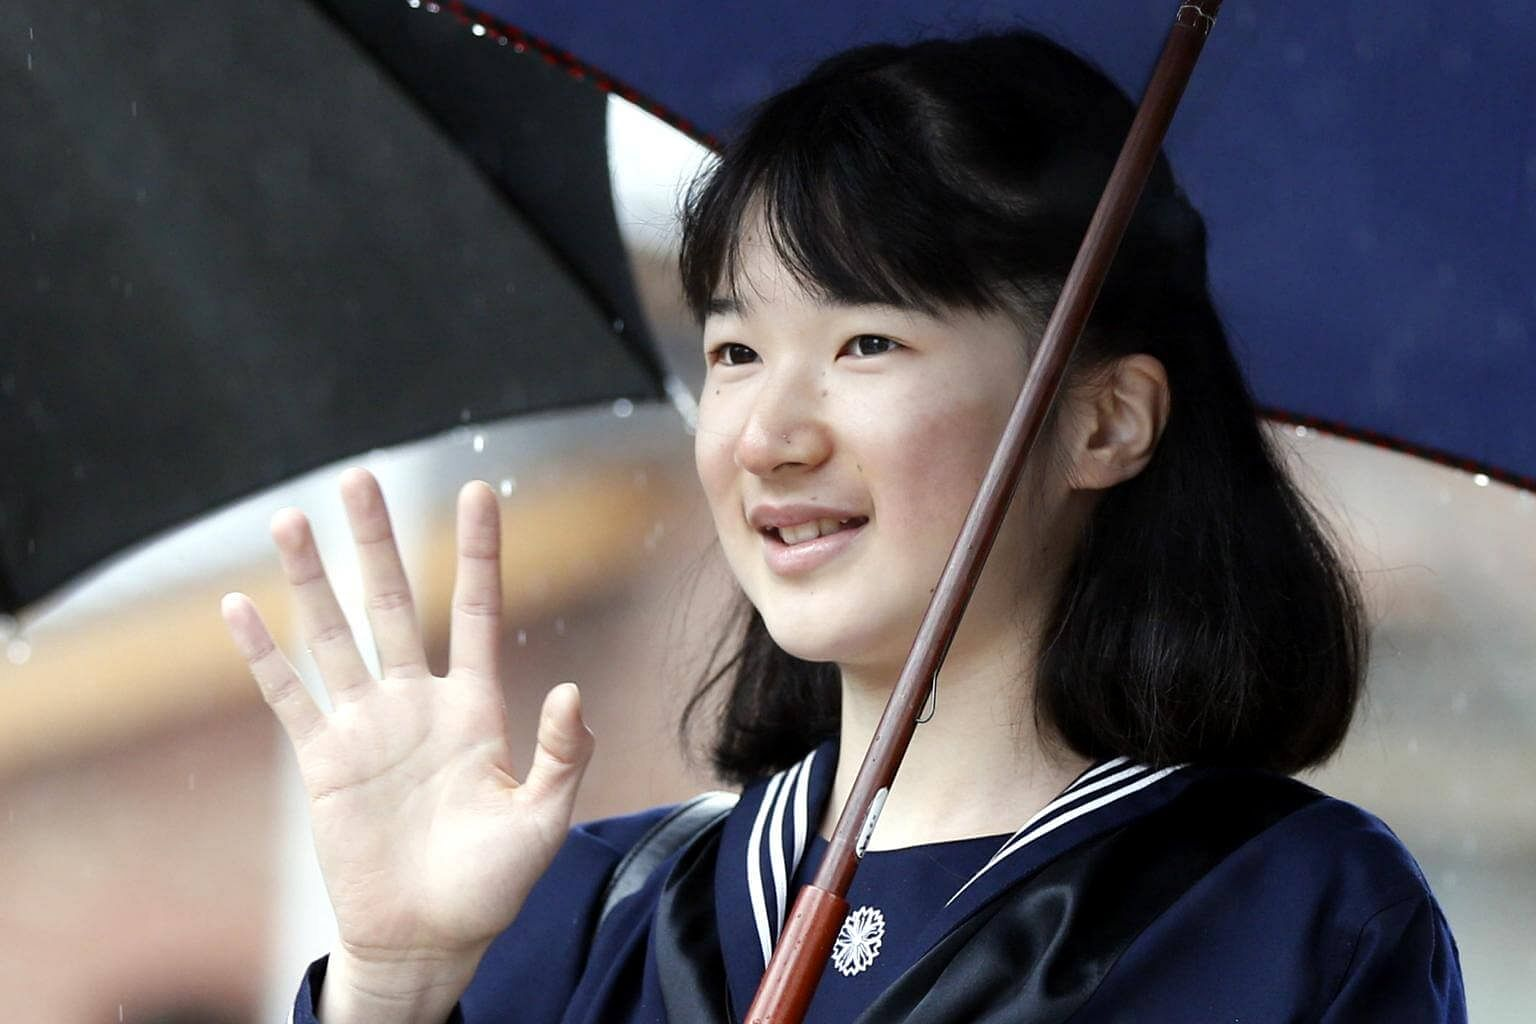 Japan Princess Mako To Swap Royalty For Love By Marrying Commoner